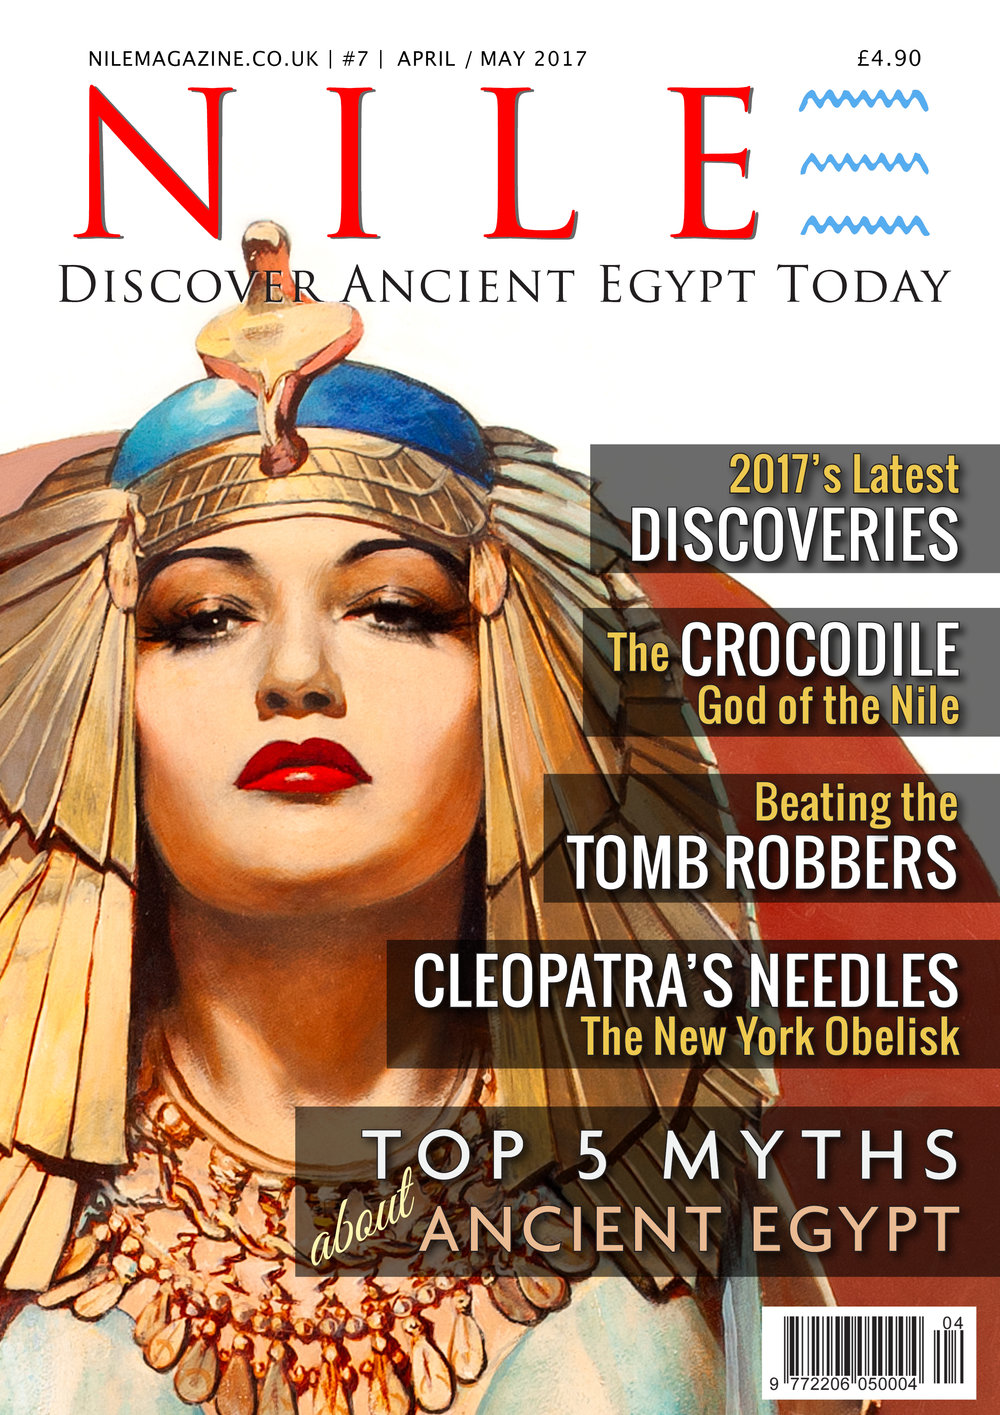 Satisfy your passion for ancient Egypt. NILE Magazine Apr-May 2017 is out now. Inside: - 66 Sekhmet statues discovered. - Largest Late Period colossus found. - Cleopatra's Needles, Part 2: The New York obelisk. - Win a signed copy of Bob Brier's new book. - Beating the tomb robbers. - The crocodile god, Sobek. - The Top 5 myths about ancient Egypt. - Plus much more. Click on the cover to subscribe.